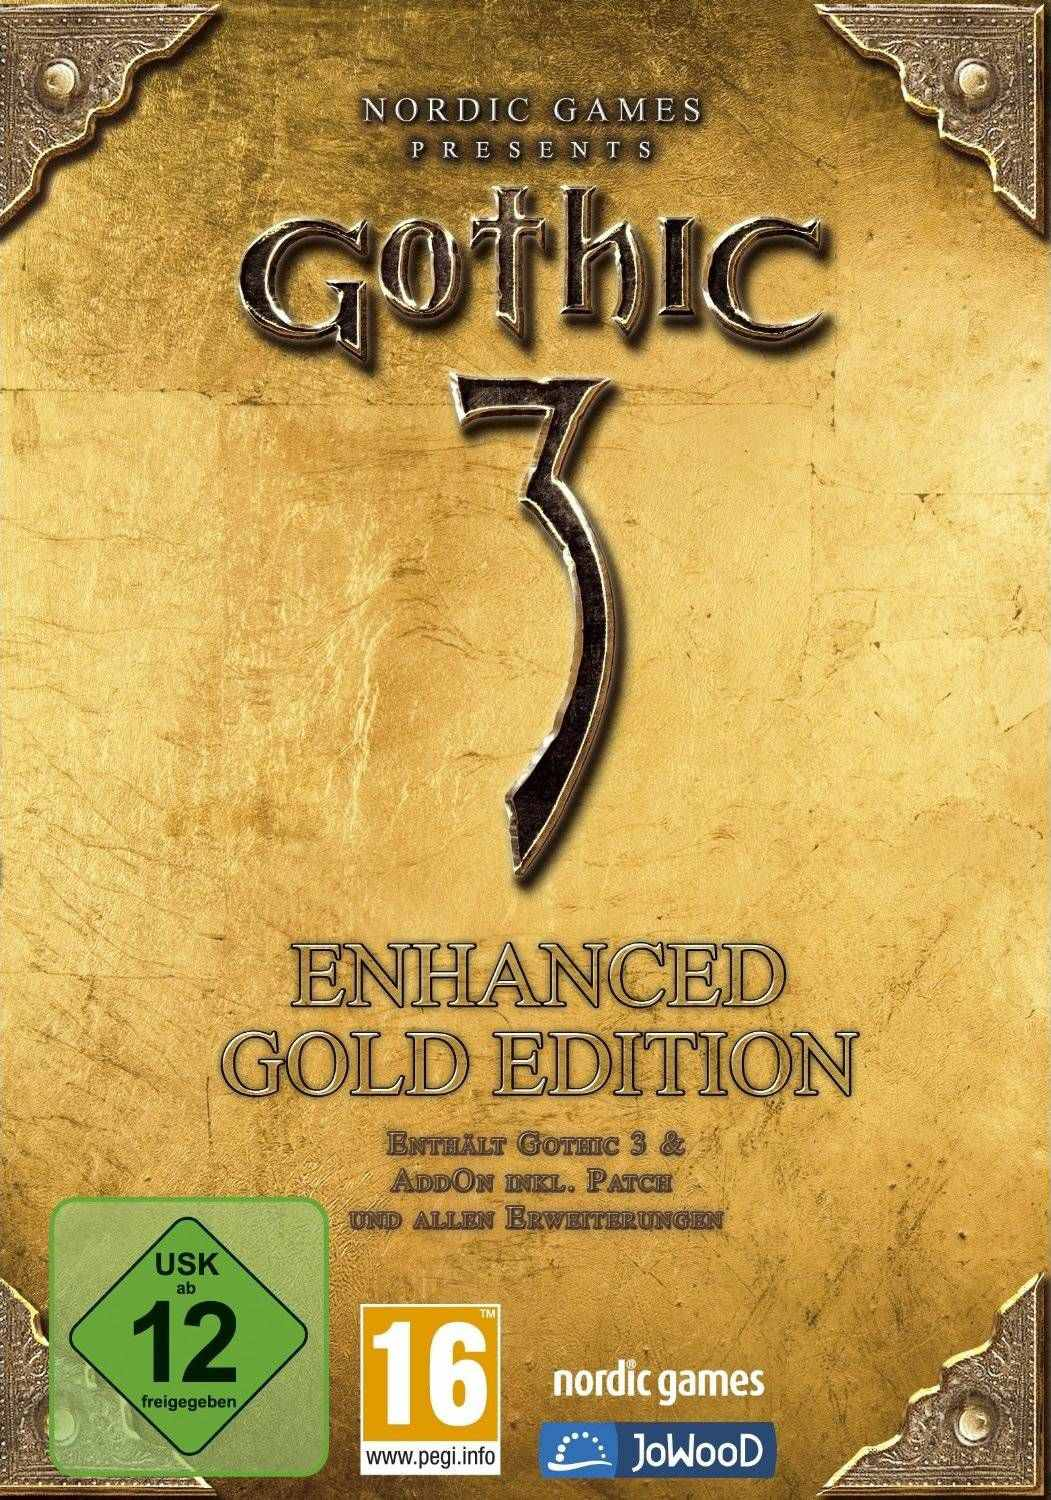 Ver Gothic 3 Enhanced Gold Edition Pc